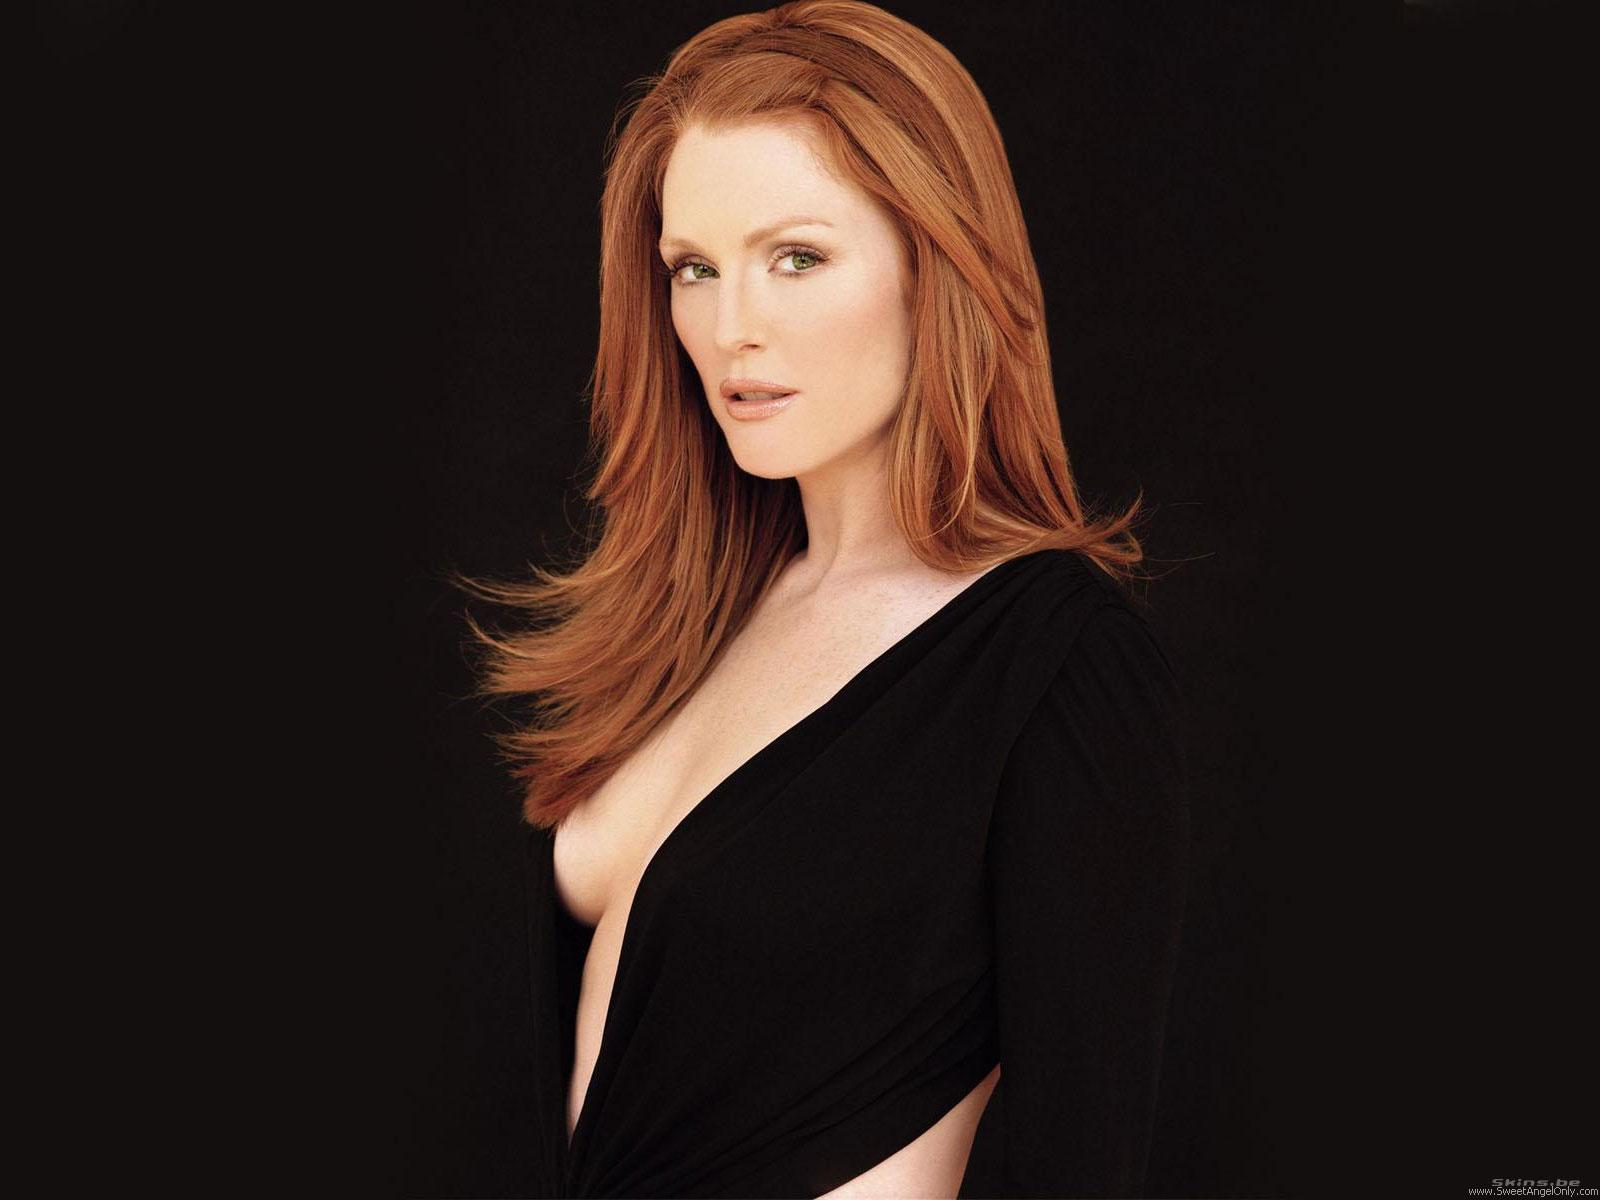 http://3.bp.blogspot.com/-eGGk8mj7wT4/TdEvpifVMlI/AAAAAAAADAA/G7T0oWSkON8/s1600/julianne_moore_HD_hot_wallpaper_15.jpg